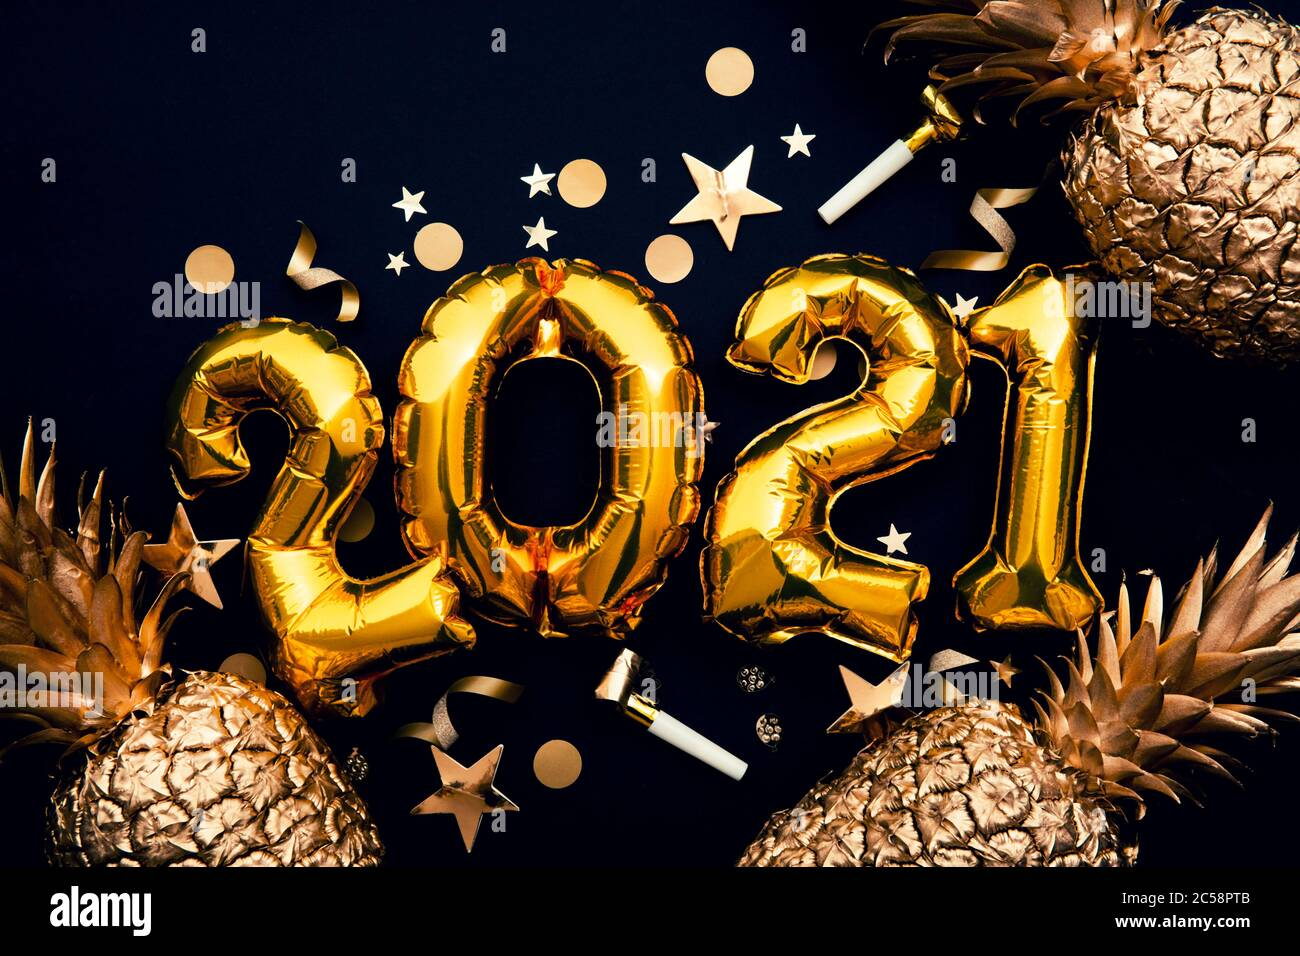 Happy New Year 2021 High Resolution Stock Photography And Images Alamy Happy new year 2021 is a website that provides you the best new year images, gifs, wishes, messages, quotes and much more. https www alamy com happy new year 2021 gold foil balloon and pineapple celebration background image364684555 html